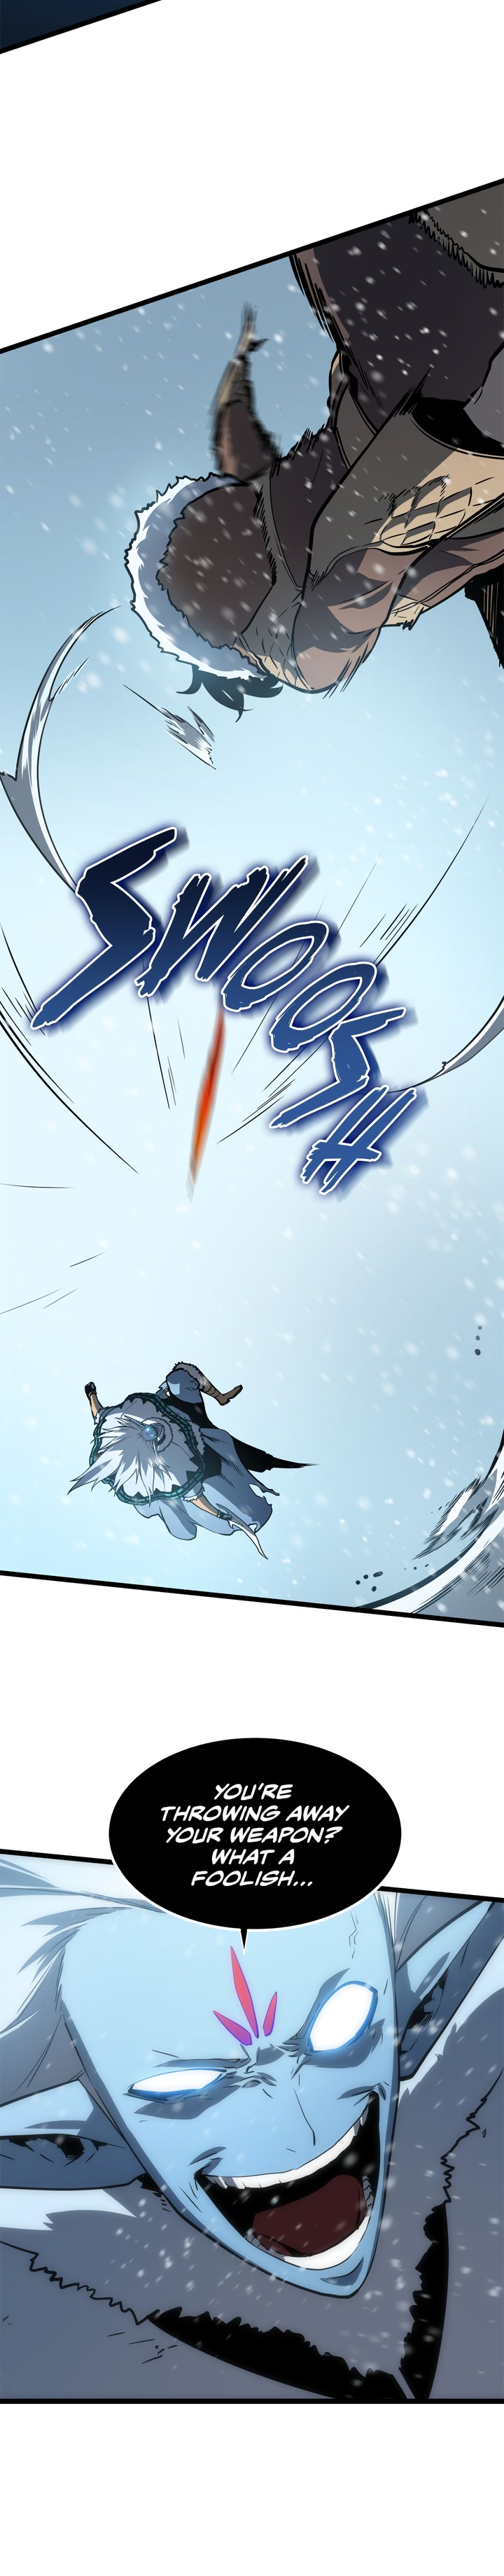 Solo Leveling, Chapter 54 image 016